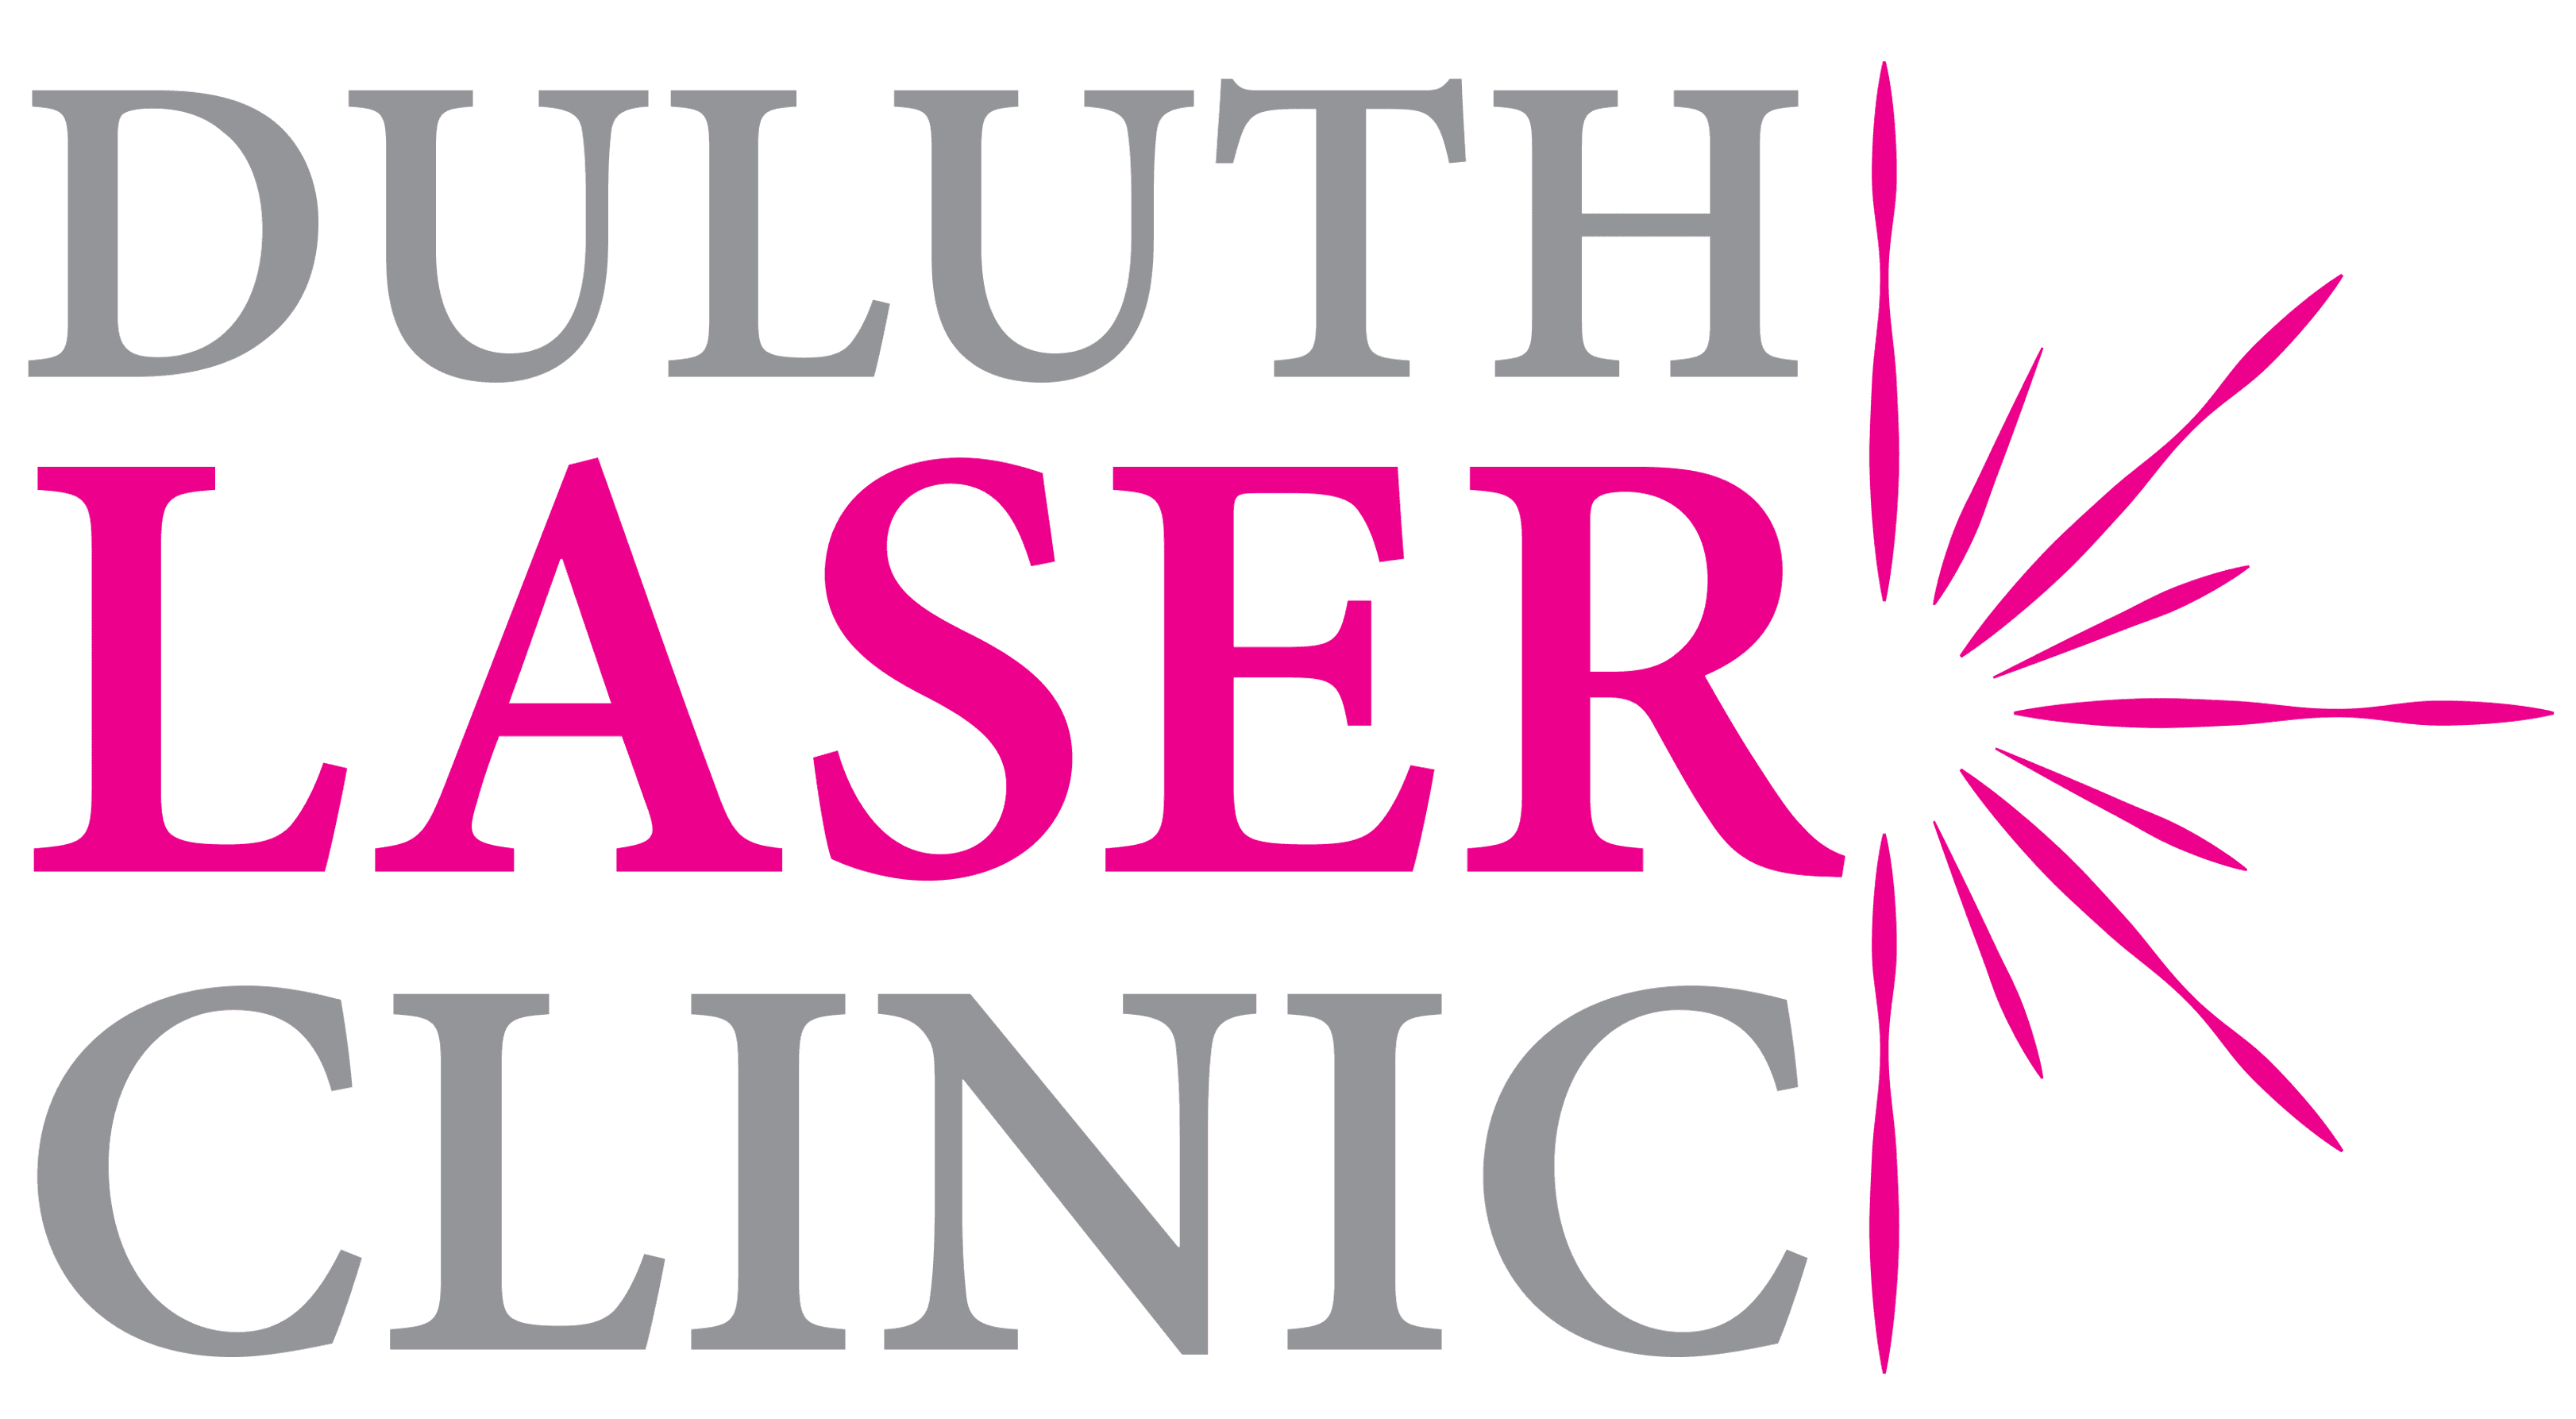 duluth laser clinic